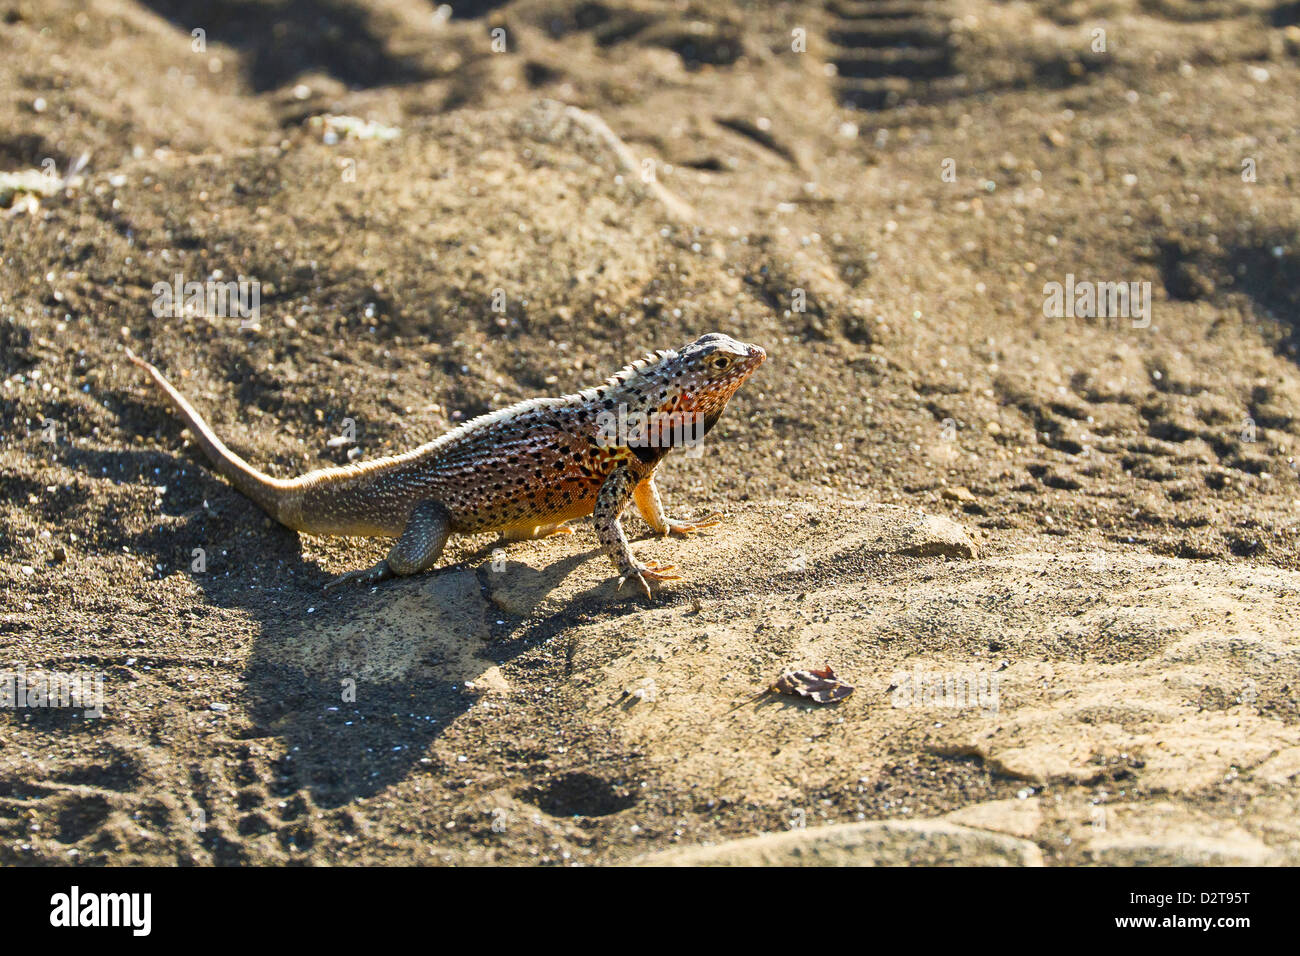 Male lava lizard (Microlophus spp), Las Bachas, Santa Cruz Island, Galapagos Islands, Ecuador, South America - Stock Image